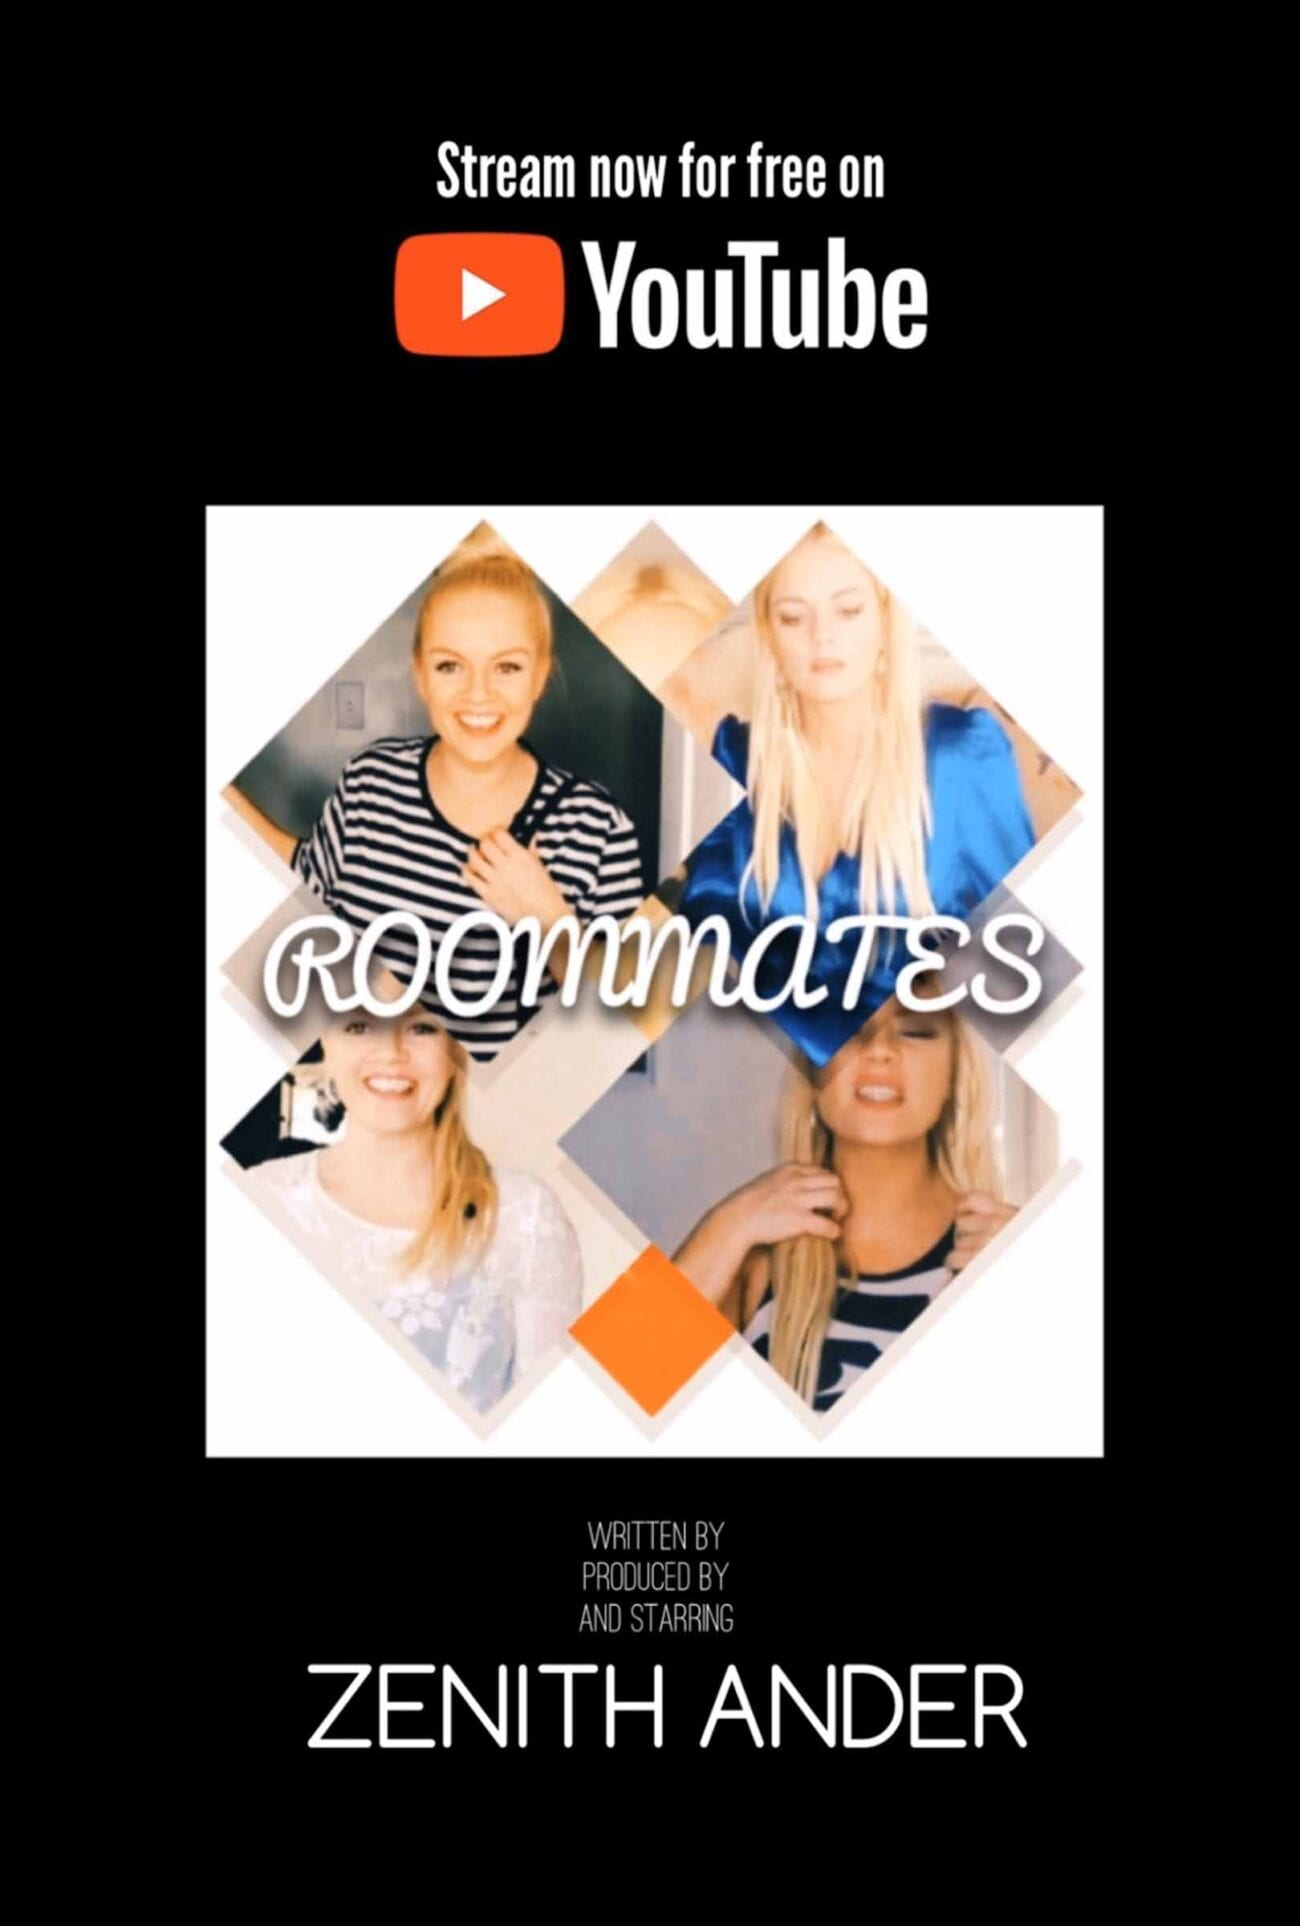 Zenith Ander has been making waves in Hollywood, and her latest web series 'Roommates' proves she's got the talent to make far.